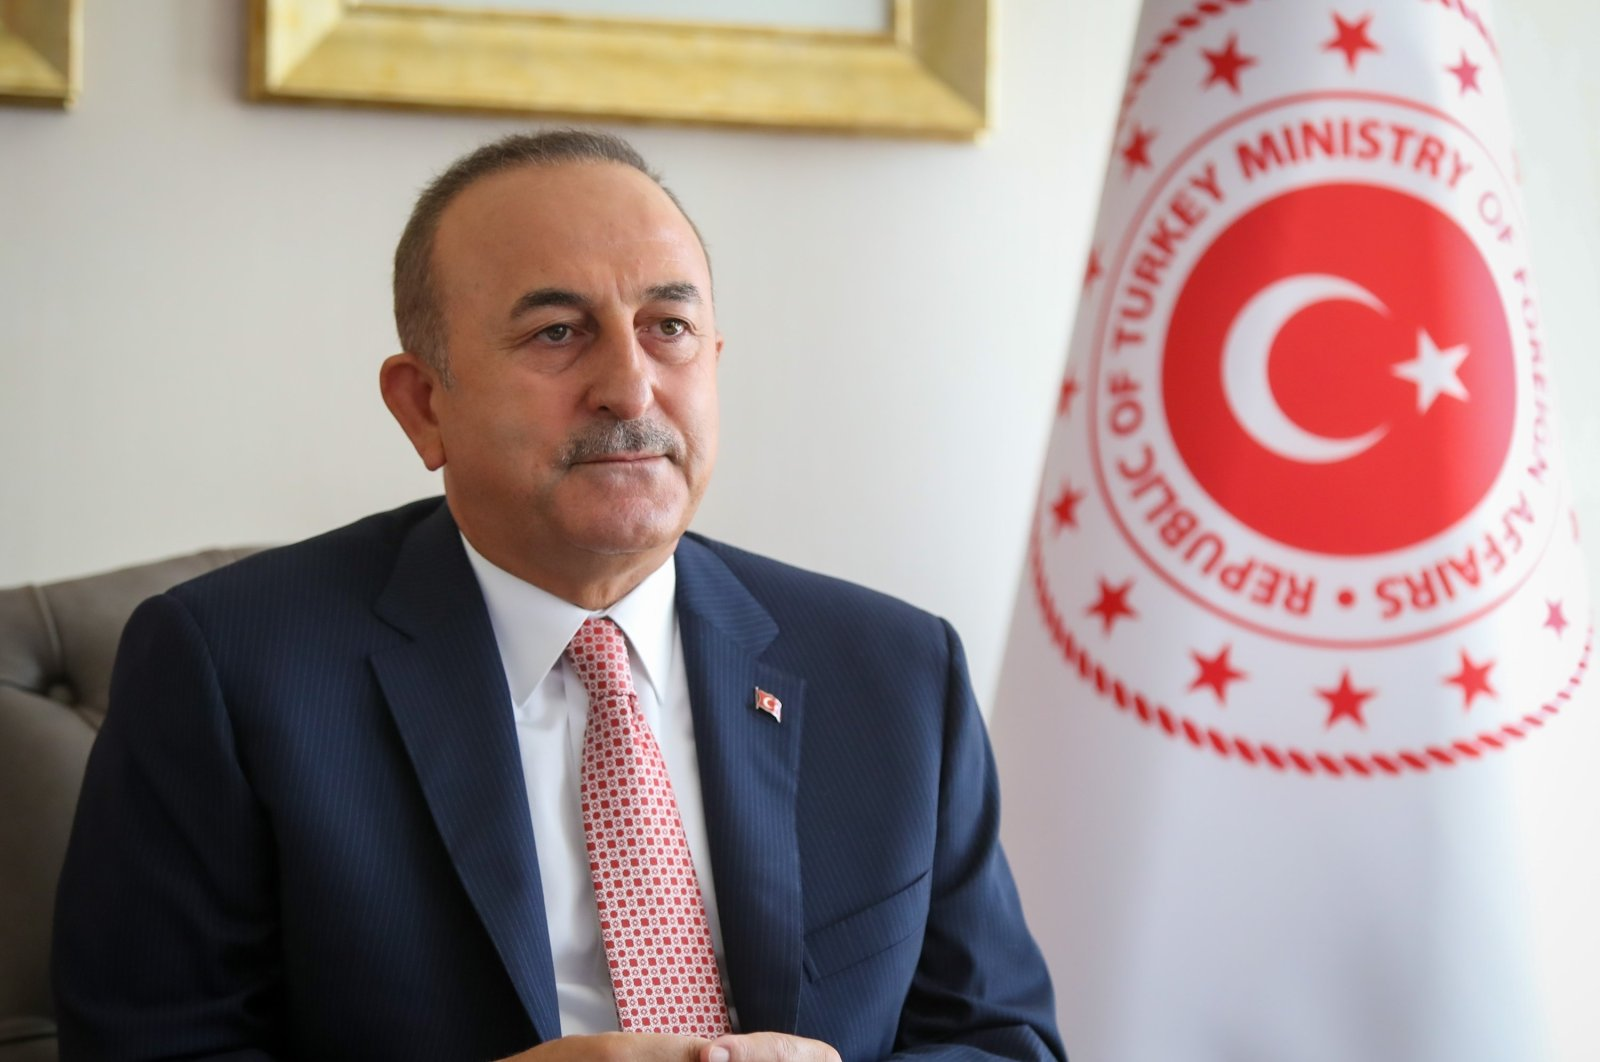 Turkish Foreign Minister Mevlut Çavuşoğlu attends the Asia Anew Panel of World Knowledge Forum that was held via videoconference, Ankara, Turkey, Sept. 16, 2020. (AA Photo)